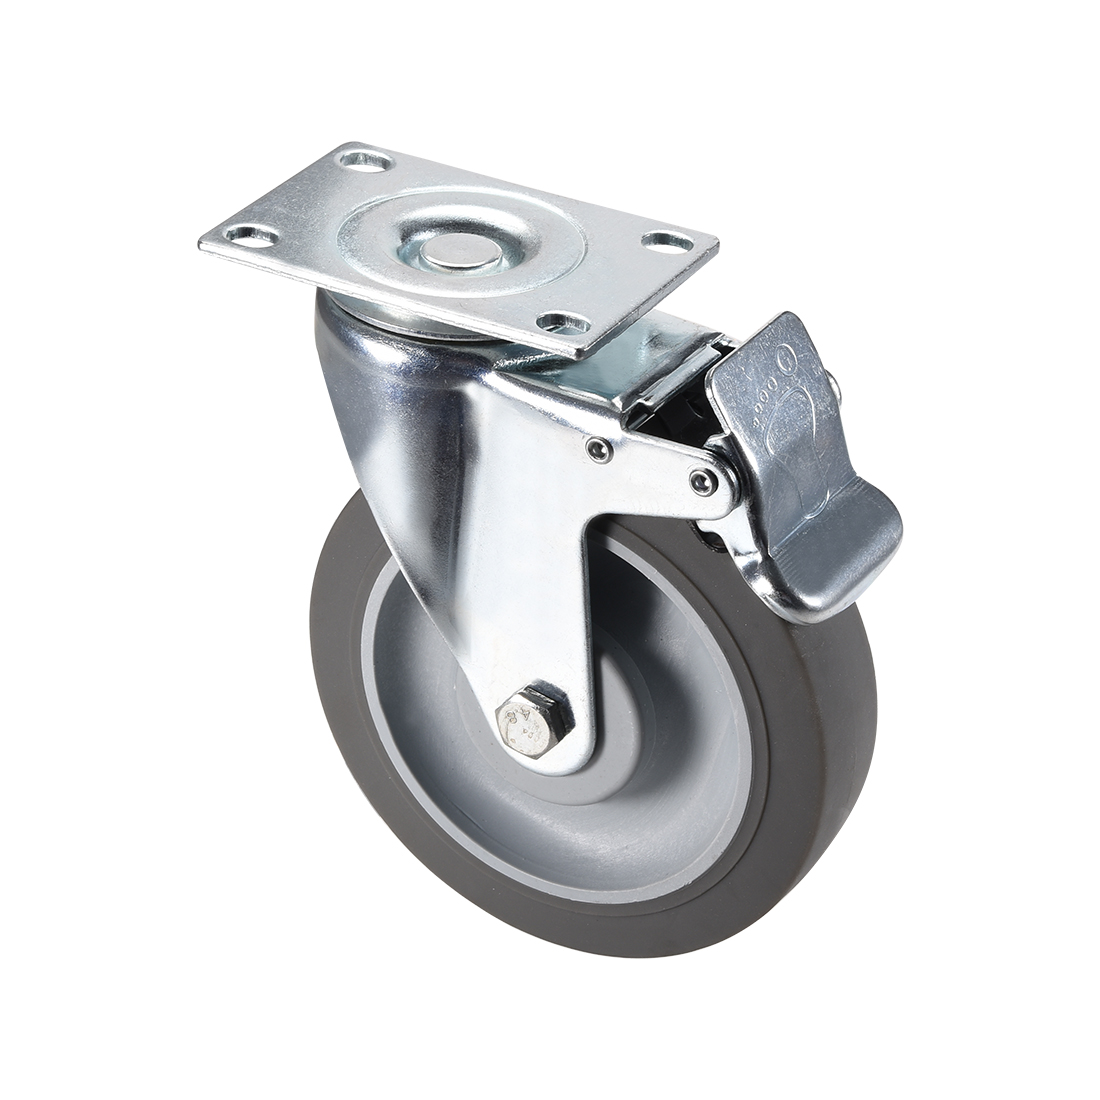 Swivel Caster Wheels 5inch TPR Caster Top Plate with Brake 264lb Capacity